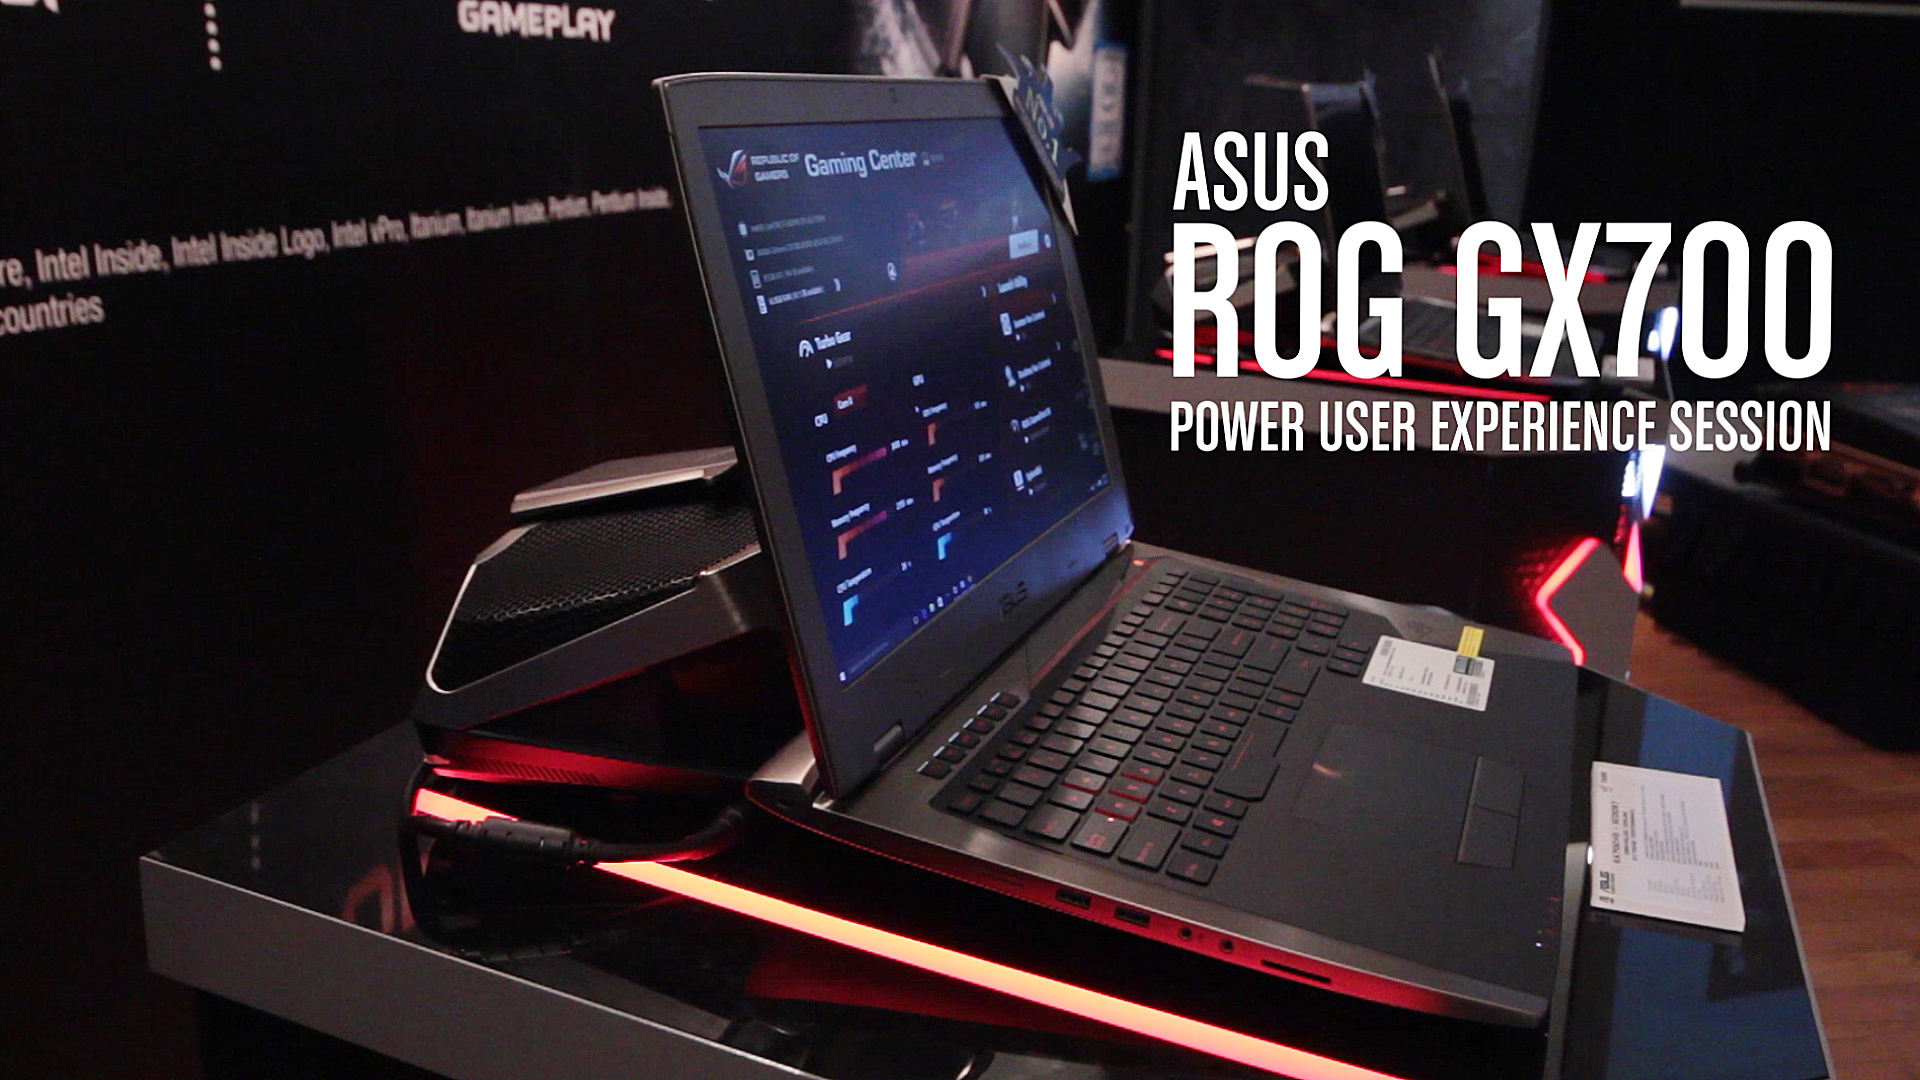 Get up close with ASUS ROG GX700, the world's 1st gaming notebook with liquid-cooling!